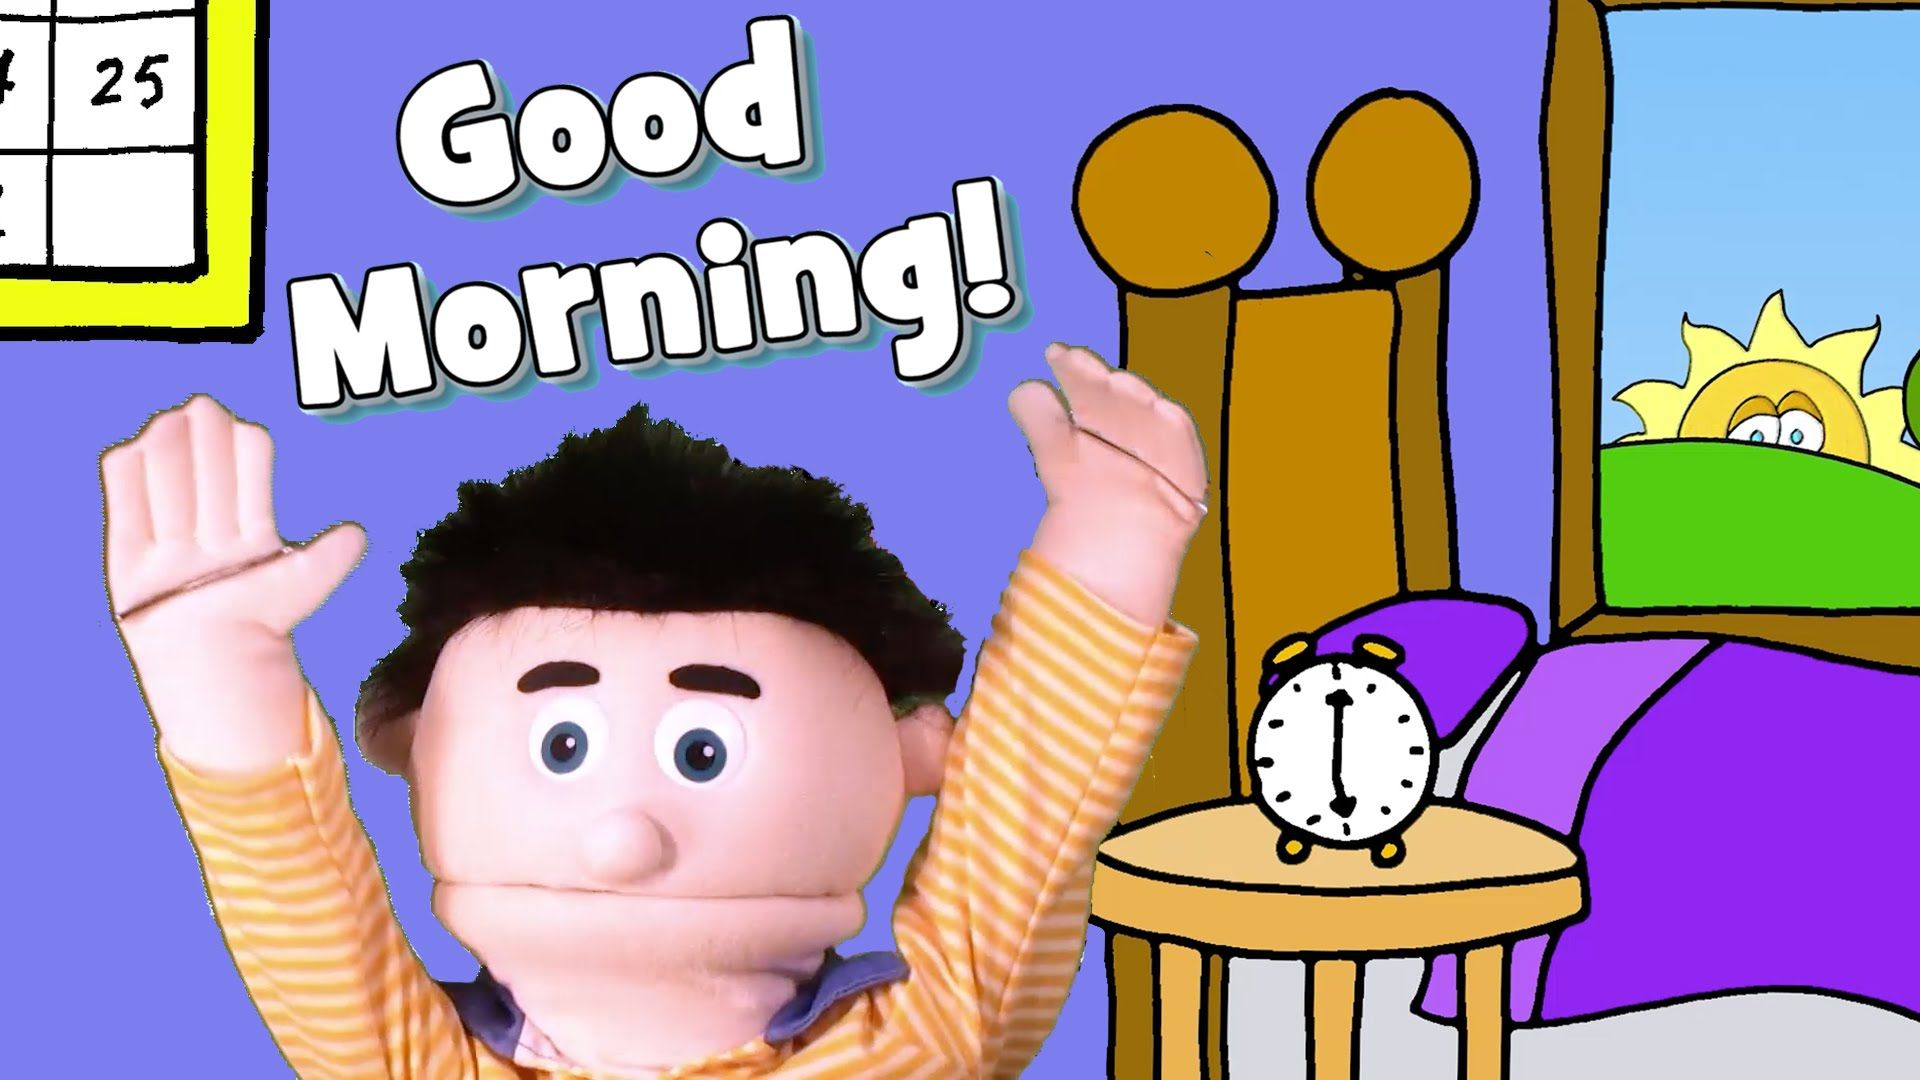 A Fun And Energetic Good Morning Song With Actions To